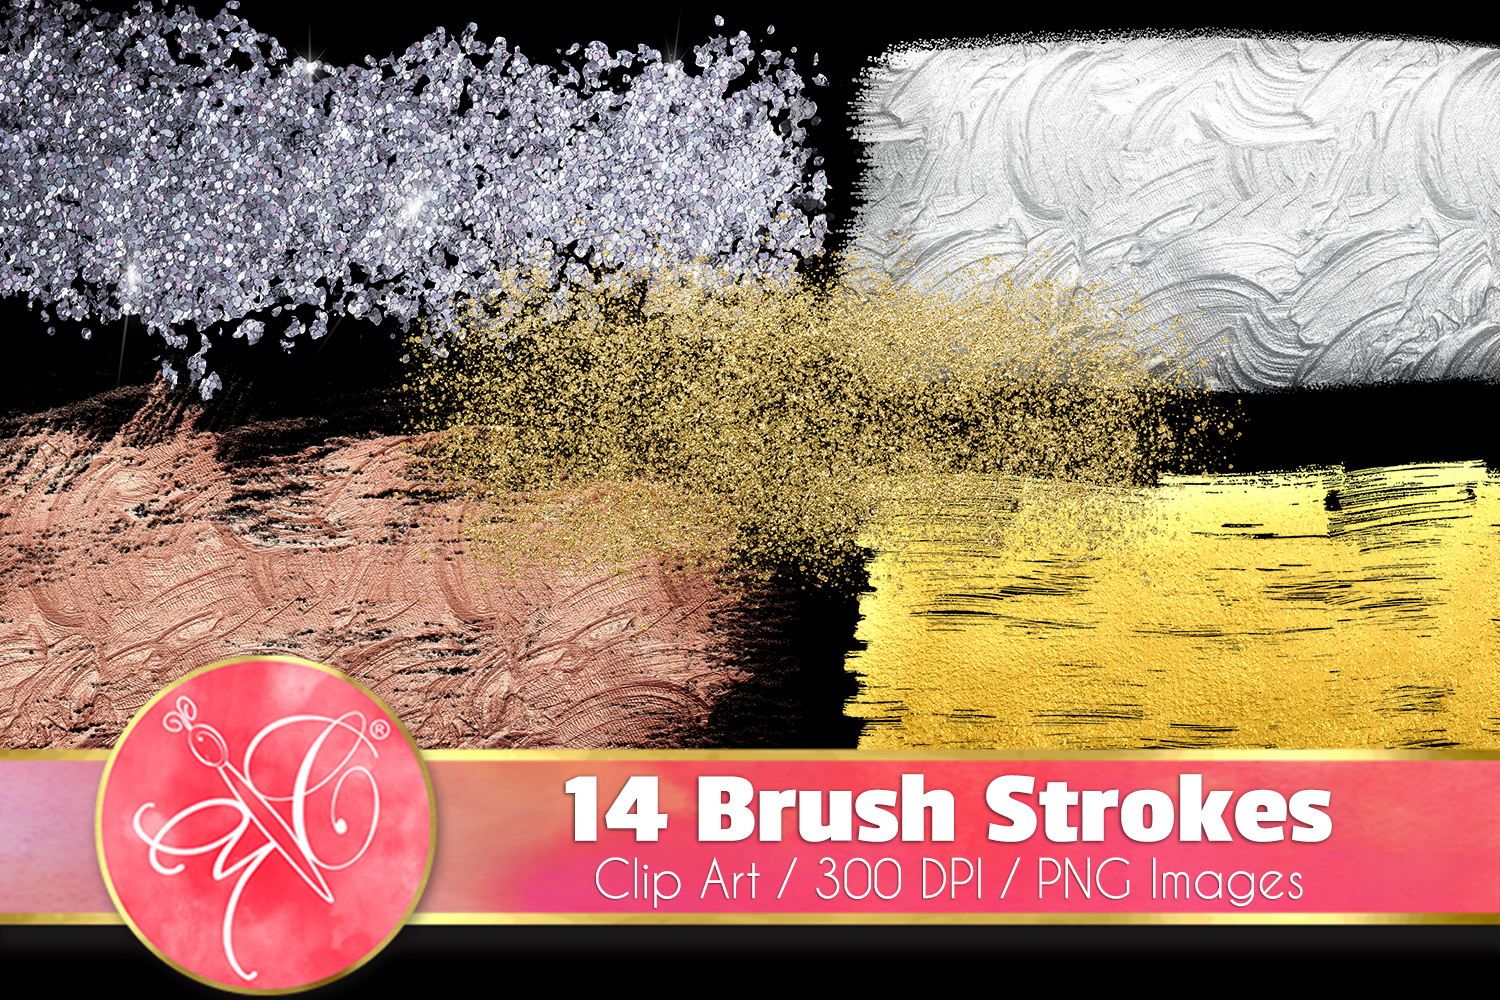 Brush Strokes ClipArt - 14 PNG images example image 1